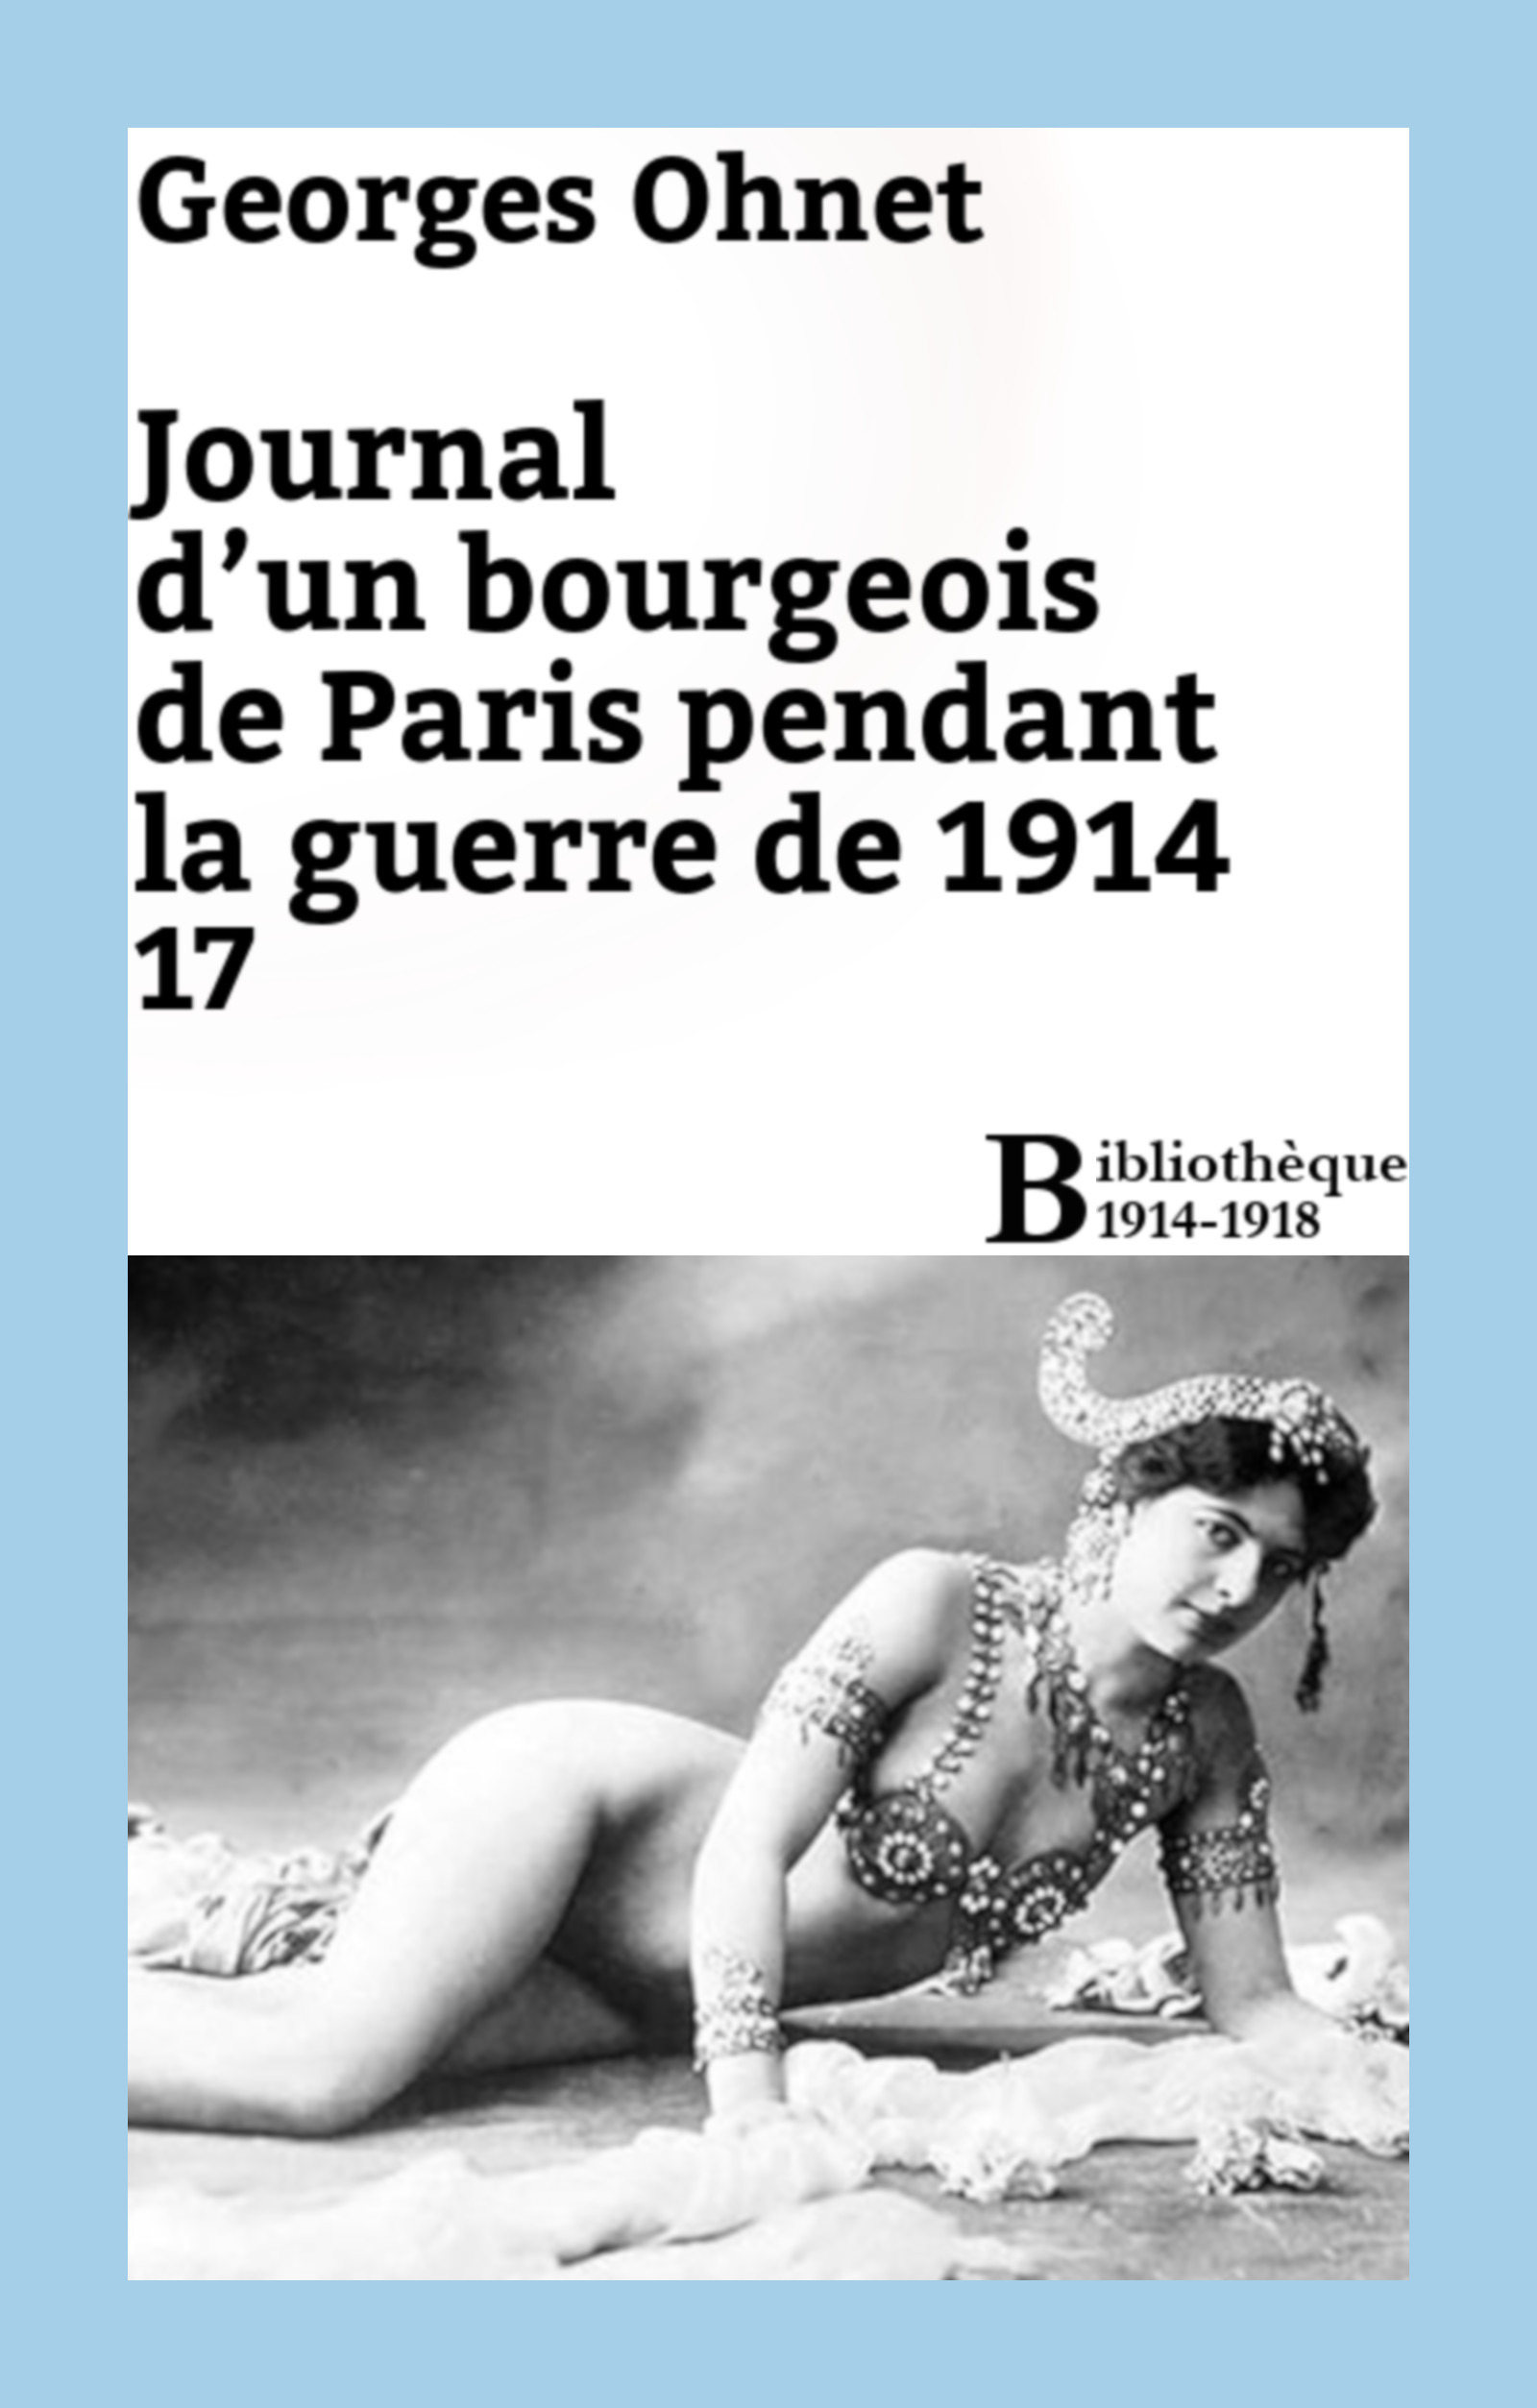 Journal d'un bourgeois de Paris pendant la guerre de 1914 - 17